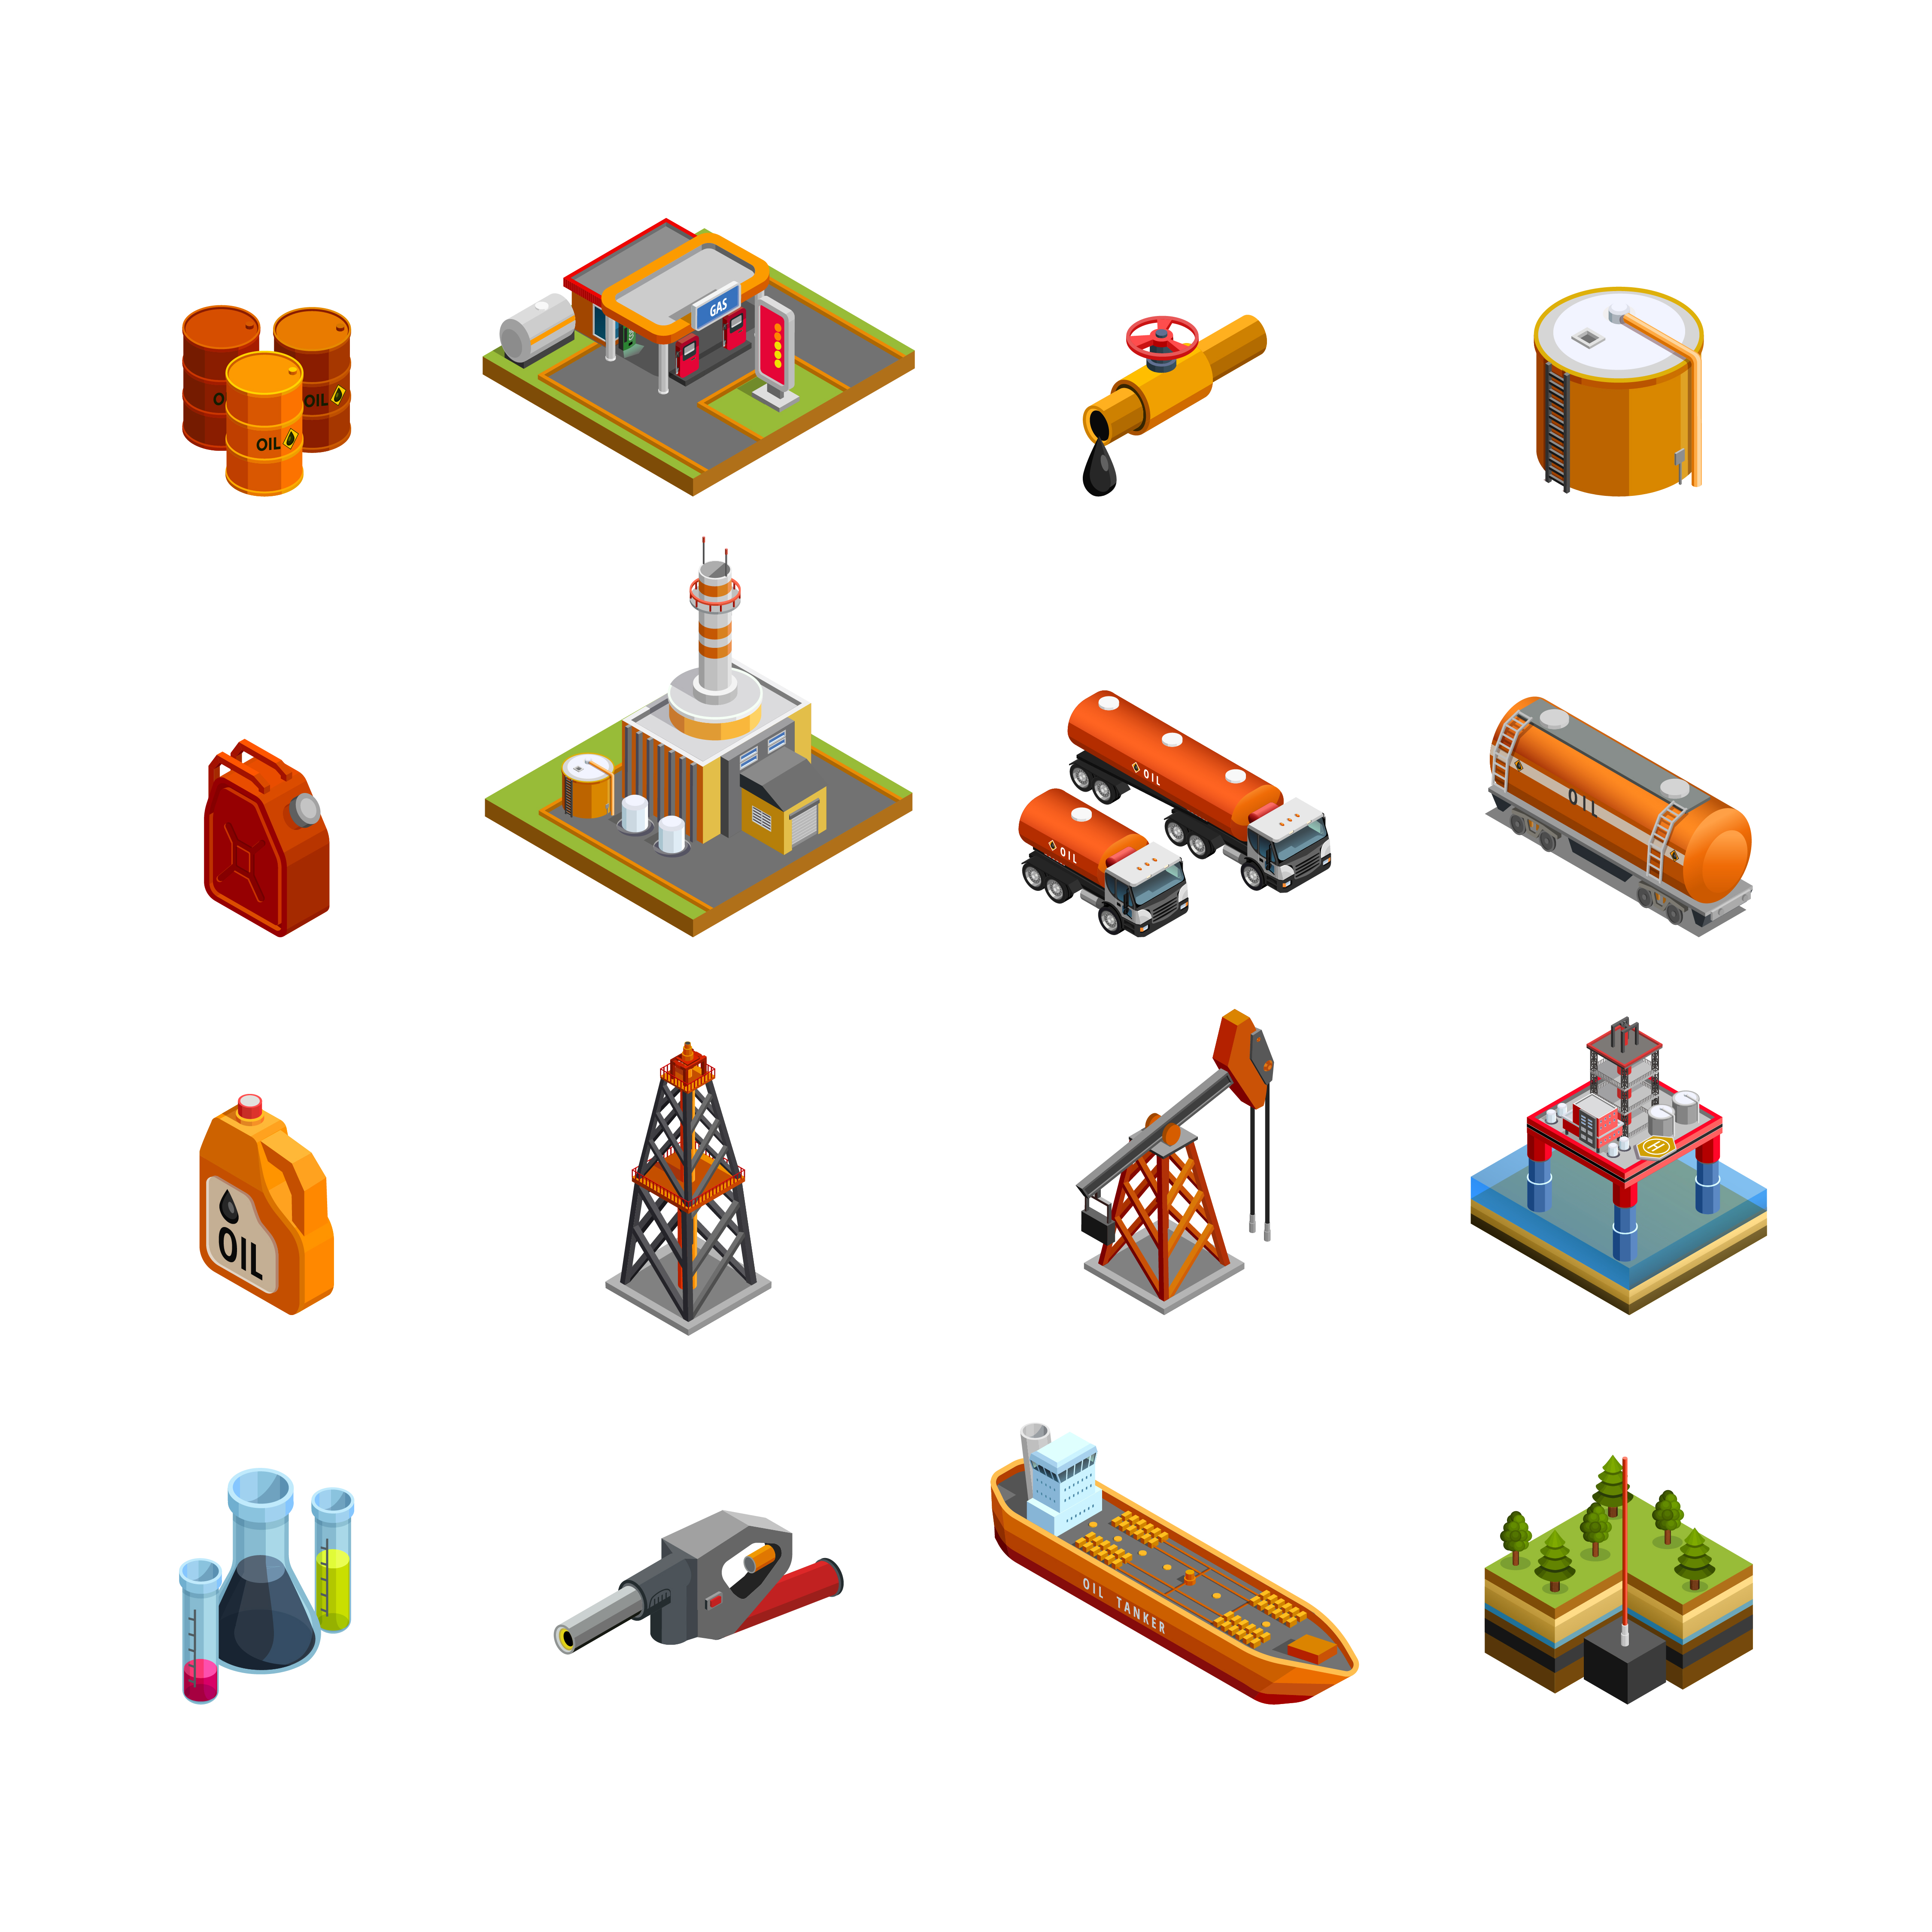 Oil Industry Isometric Icons Set - Download Free Vectors, Clipart Graphics & Vector Art